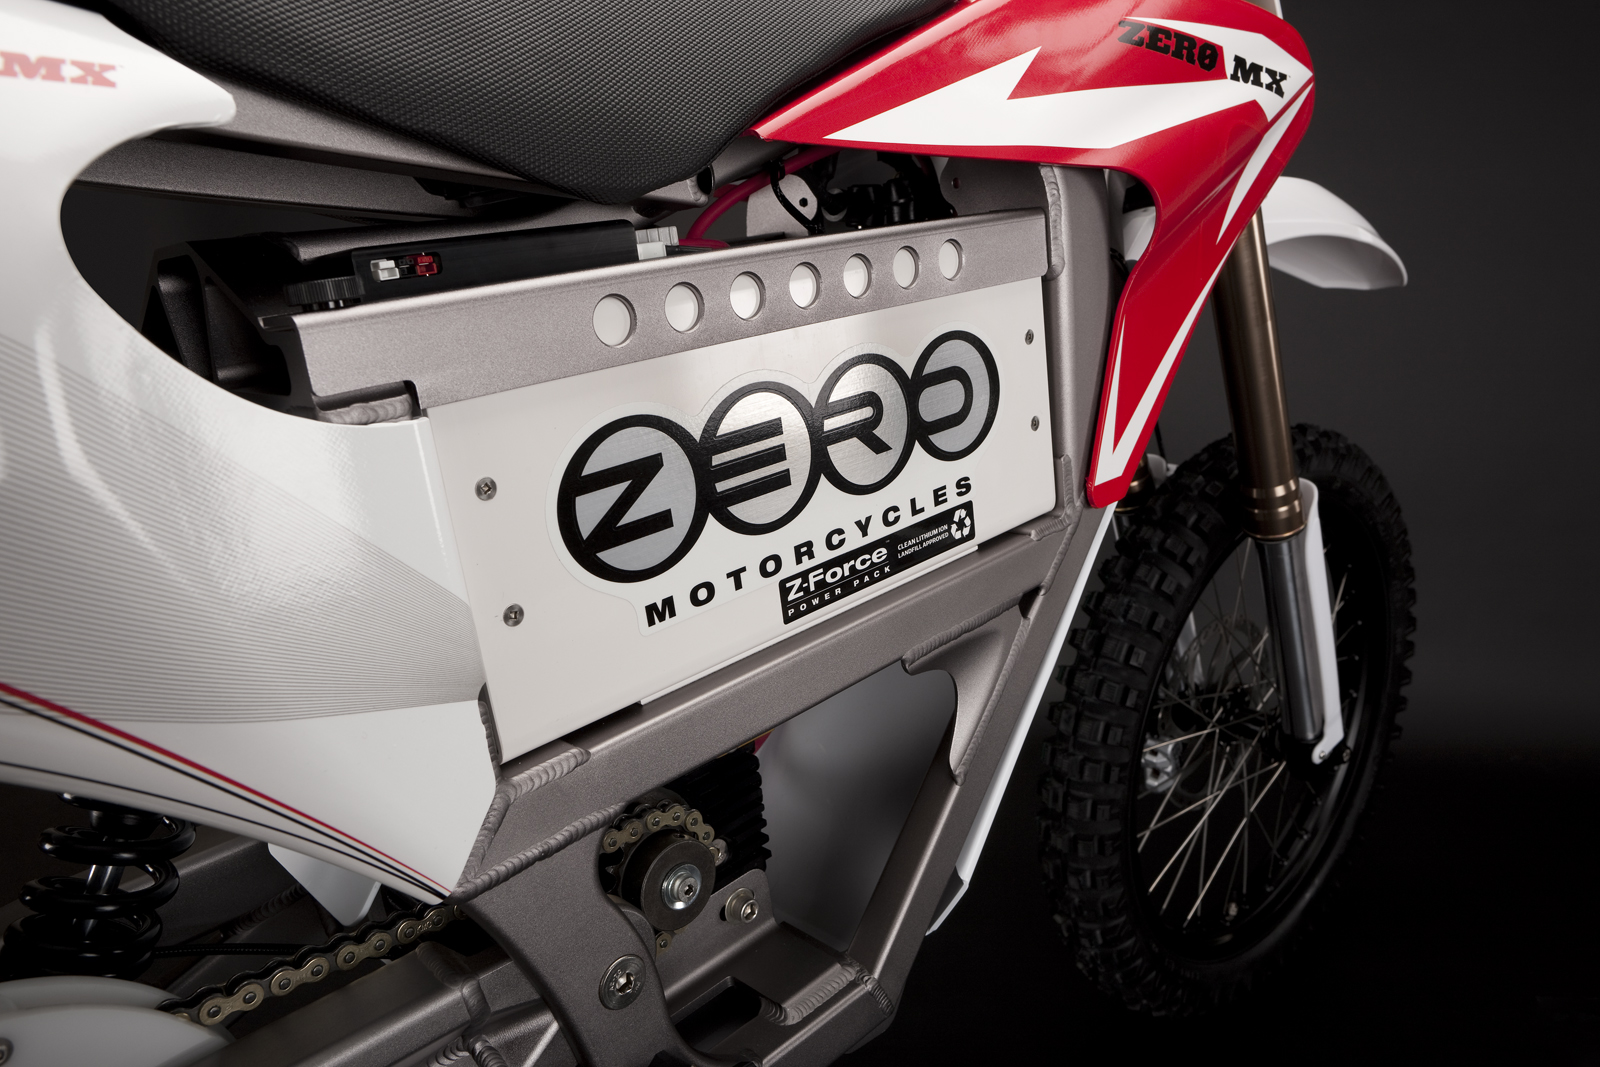 2010 Zero MX Electric Motorcycle: Battery 2